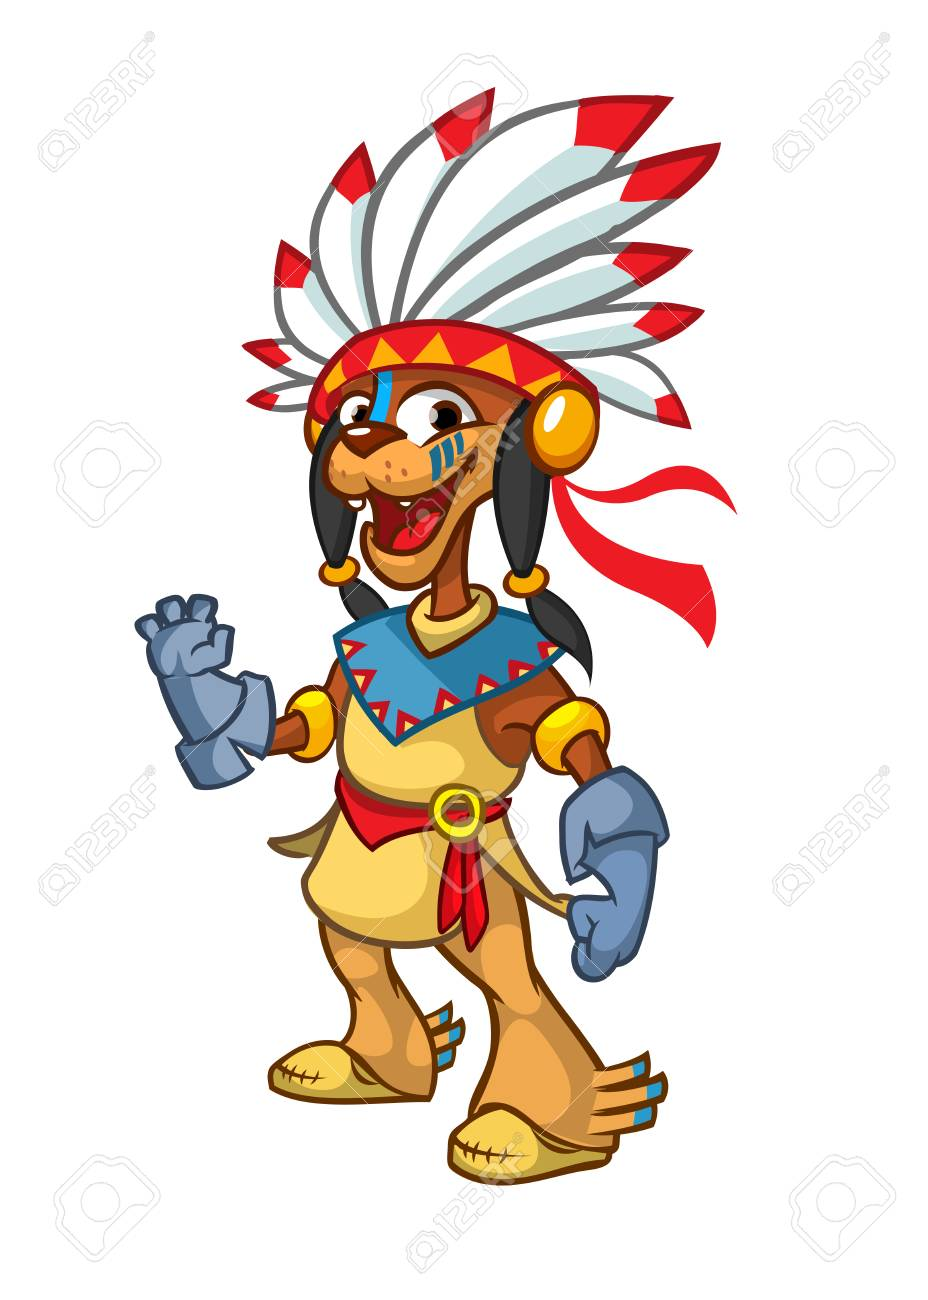 medium resolution of cartoon native american indian character illustration clipart stock vector 110101299